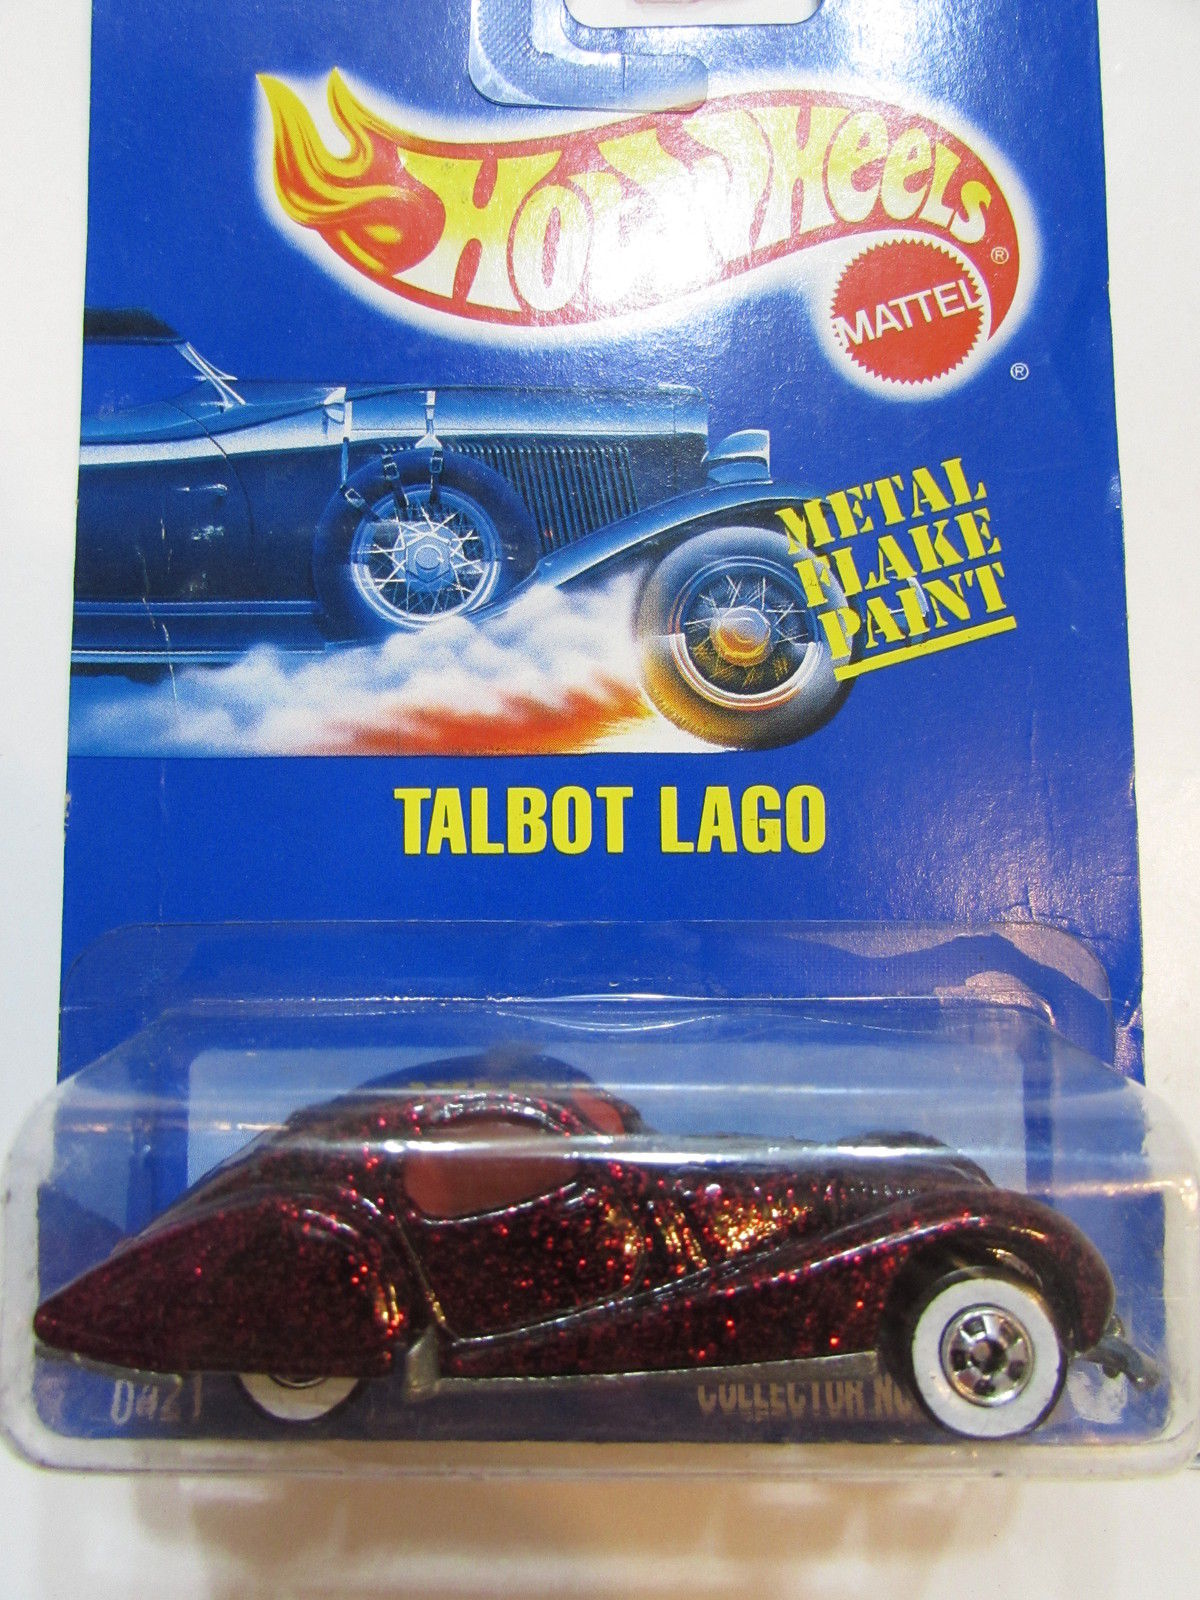 HOT WHEELS 1990 - 1991 TALBOT LAGO BLUE CARD METAL FLAKE PAINT #163